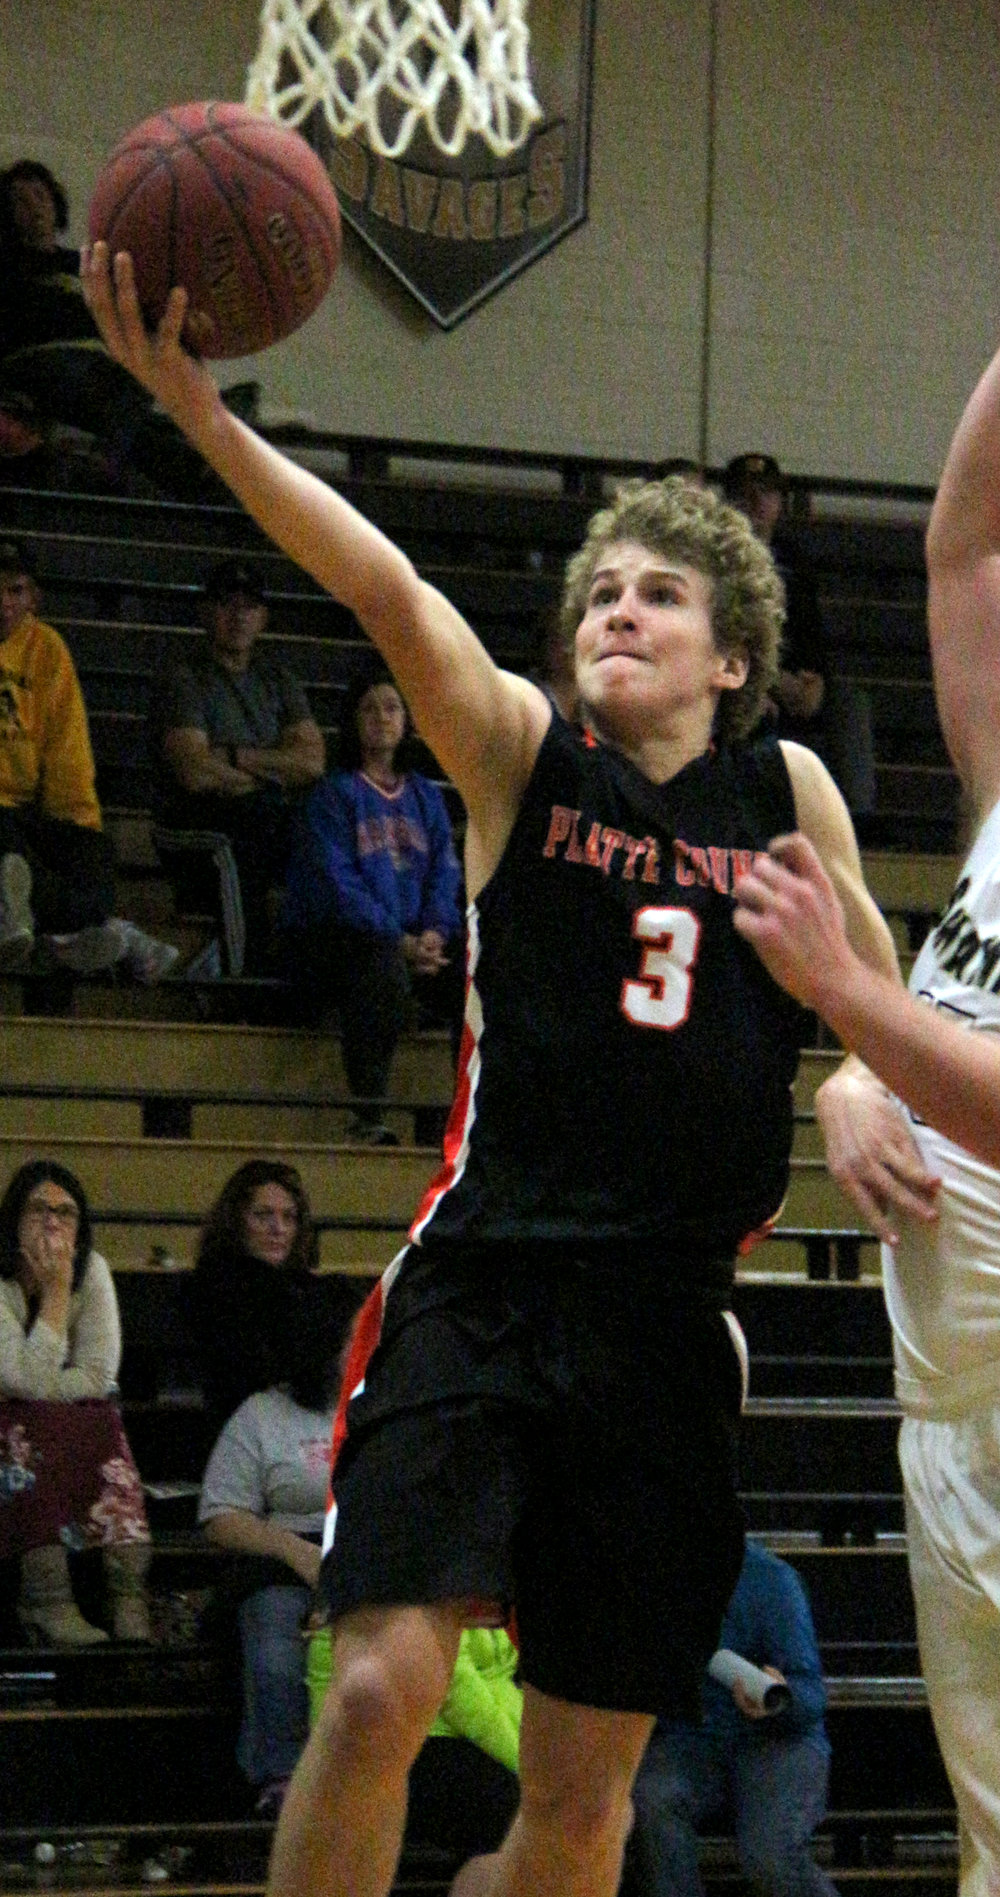 ROSS MARTIN/Citizen photo Platte County senior guard Nathen Mair goes in for a layup in a Savannah Invitational game against Savannah on Monday, Nov. 27 at Savannah High School in Savannah, Mo.